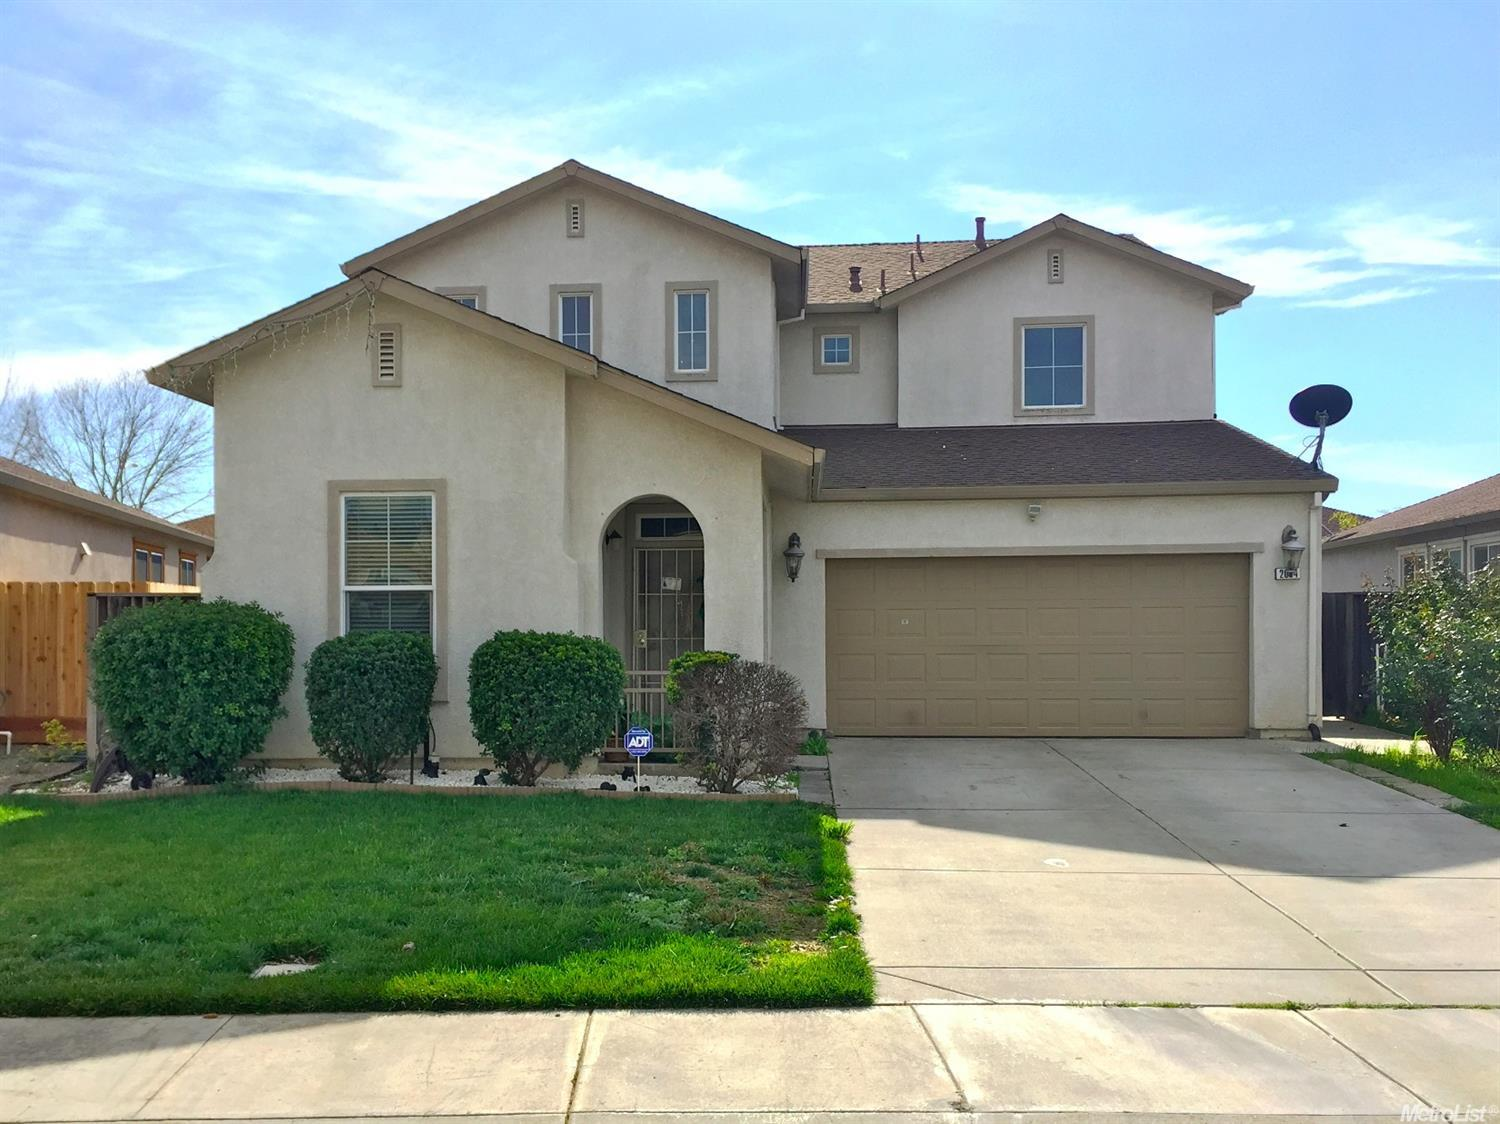 2044 Moss Oak Way, Stockton, CA